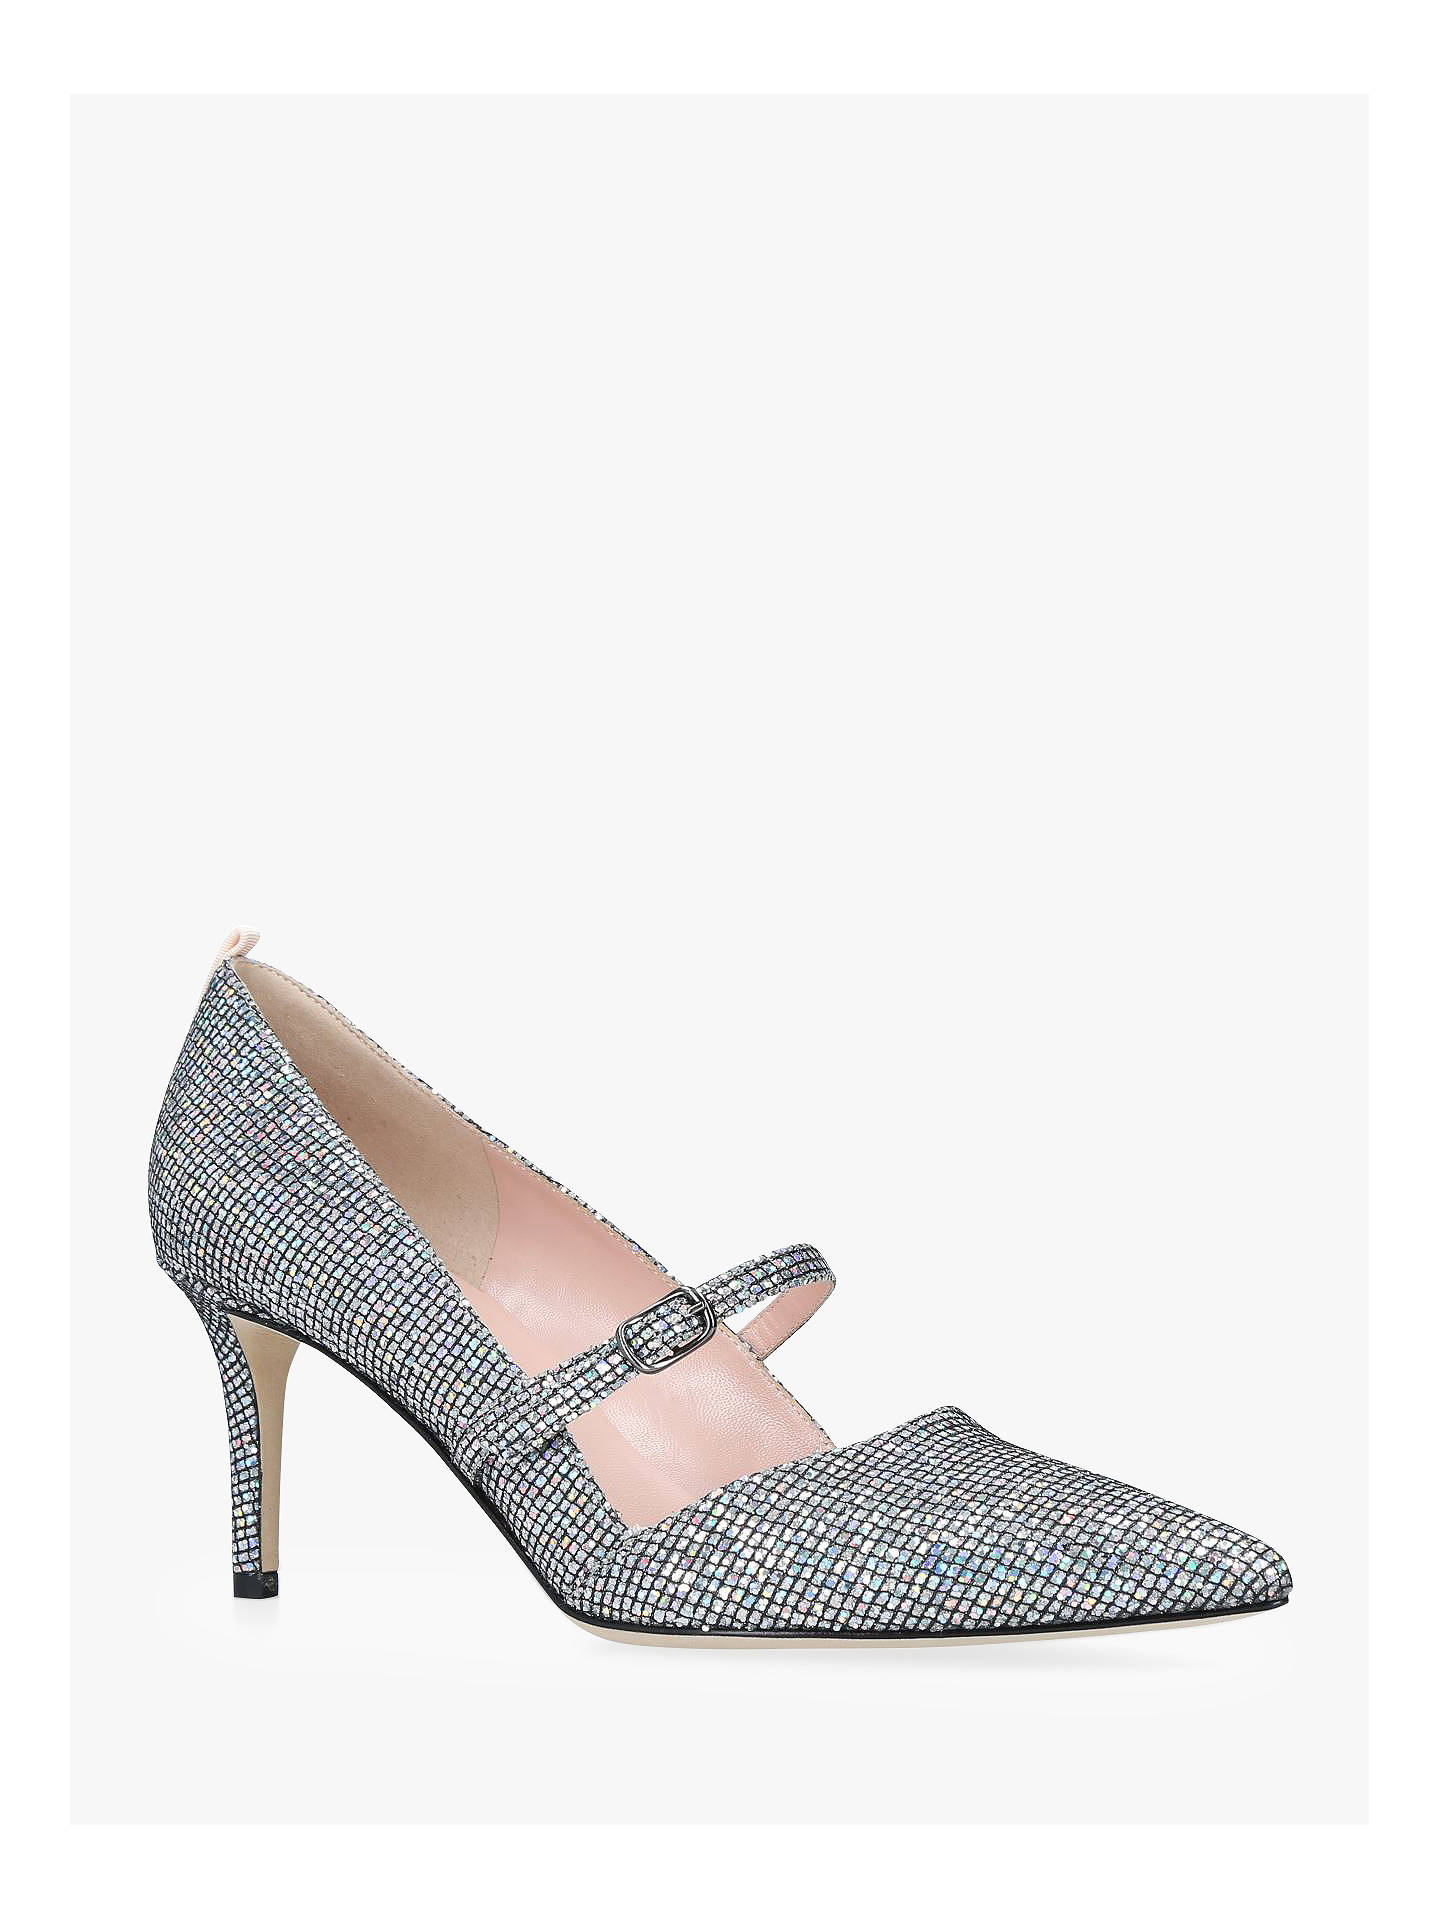 BuySJP by Sarah Jessica Parker Nirvana Court Shoes, Silver, 2 Online at johnlewis.com